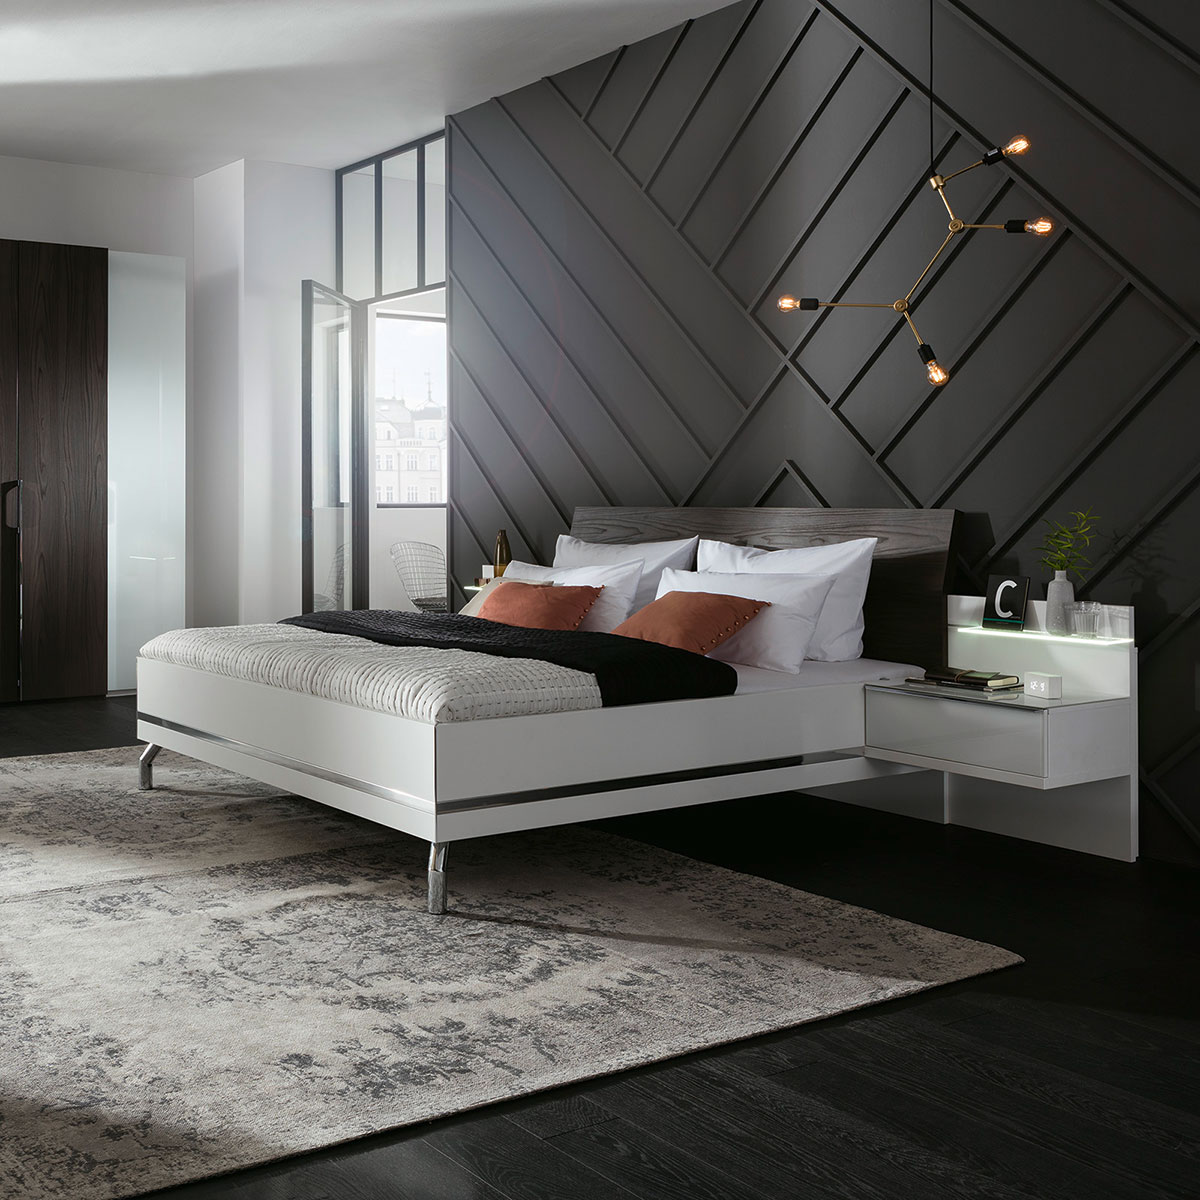 doppelbett concept me500 von nolte m bel ca 180x200 cm flamme. Black Bedroom Furniture Sets. Home Design Ideas